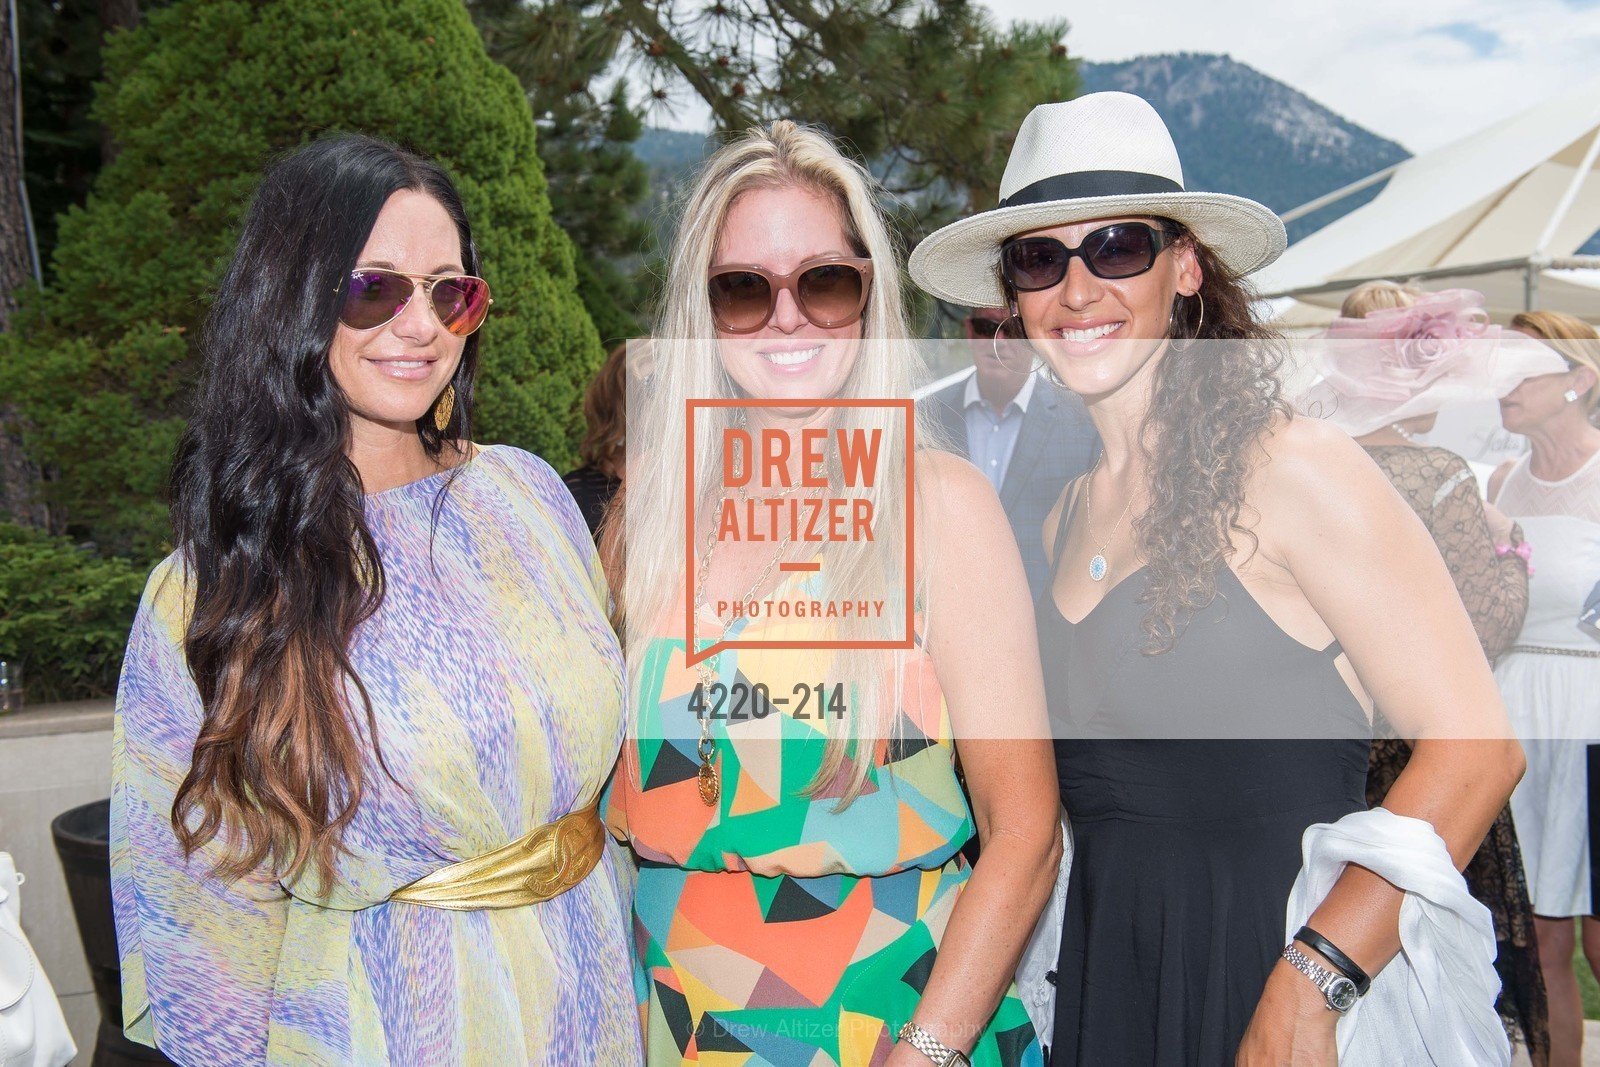 Heather Dubinetskiy, Kim Saca, Melissa Allman, Saks Fifth Avenue and The League to Save Lake Tahoe Present Fashion on the Lake, Private Residence, August 1st, 2015,Drew Altizer, Drew Altizer Photography, full-service event agency, private events, San Francisco photographer, photographer California